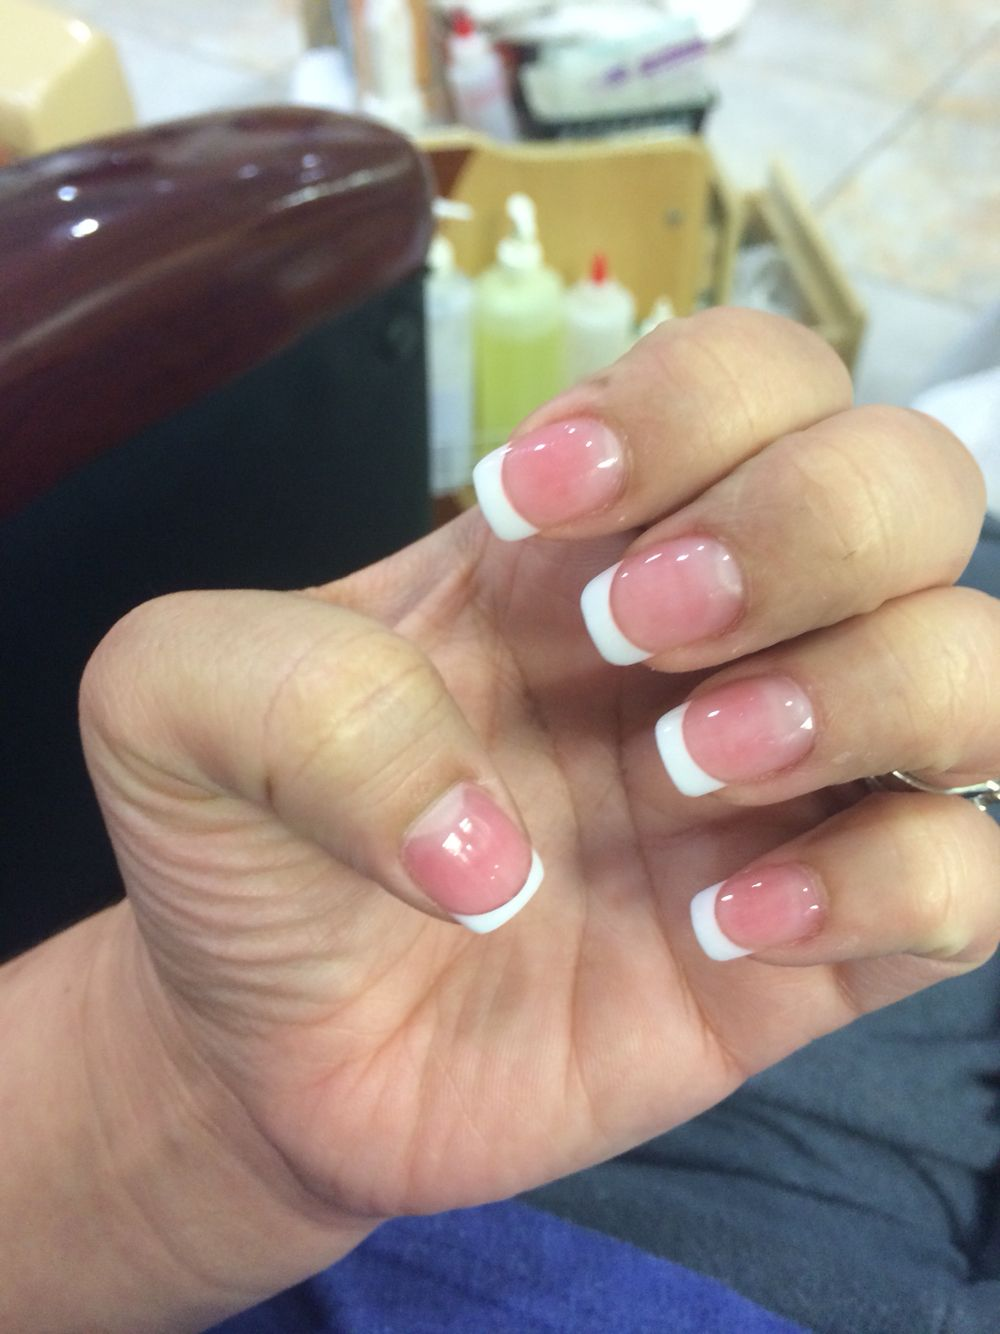 French Manicure With Thin White Tip Powder With Medium Pink Powder French Acrylic Nails Pink Acrylic Nails Pretty Acrylic Nails